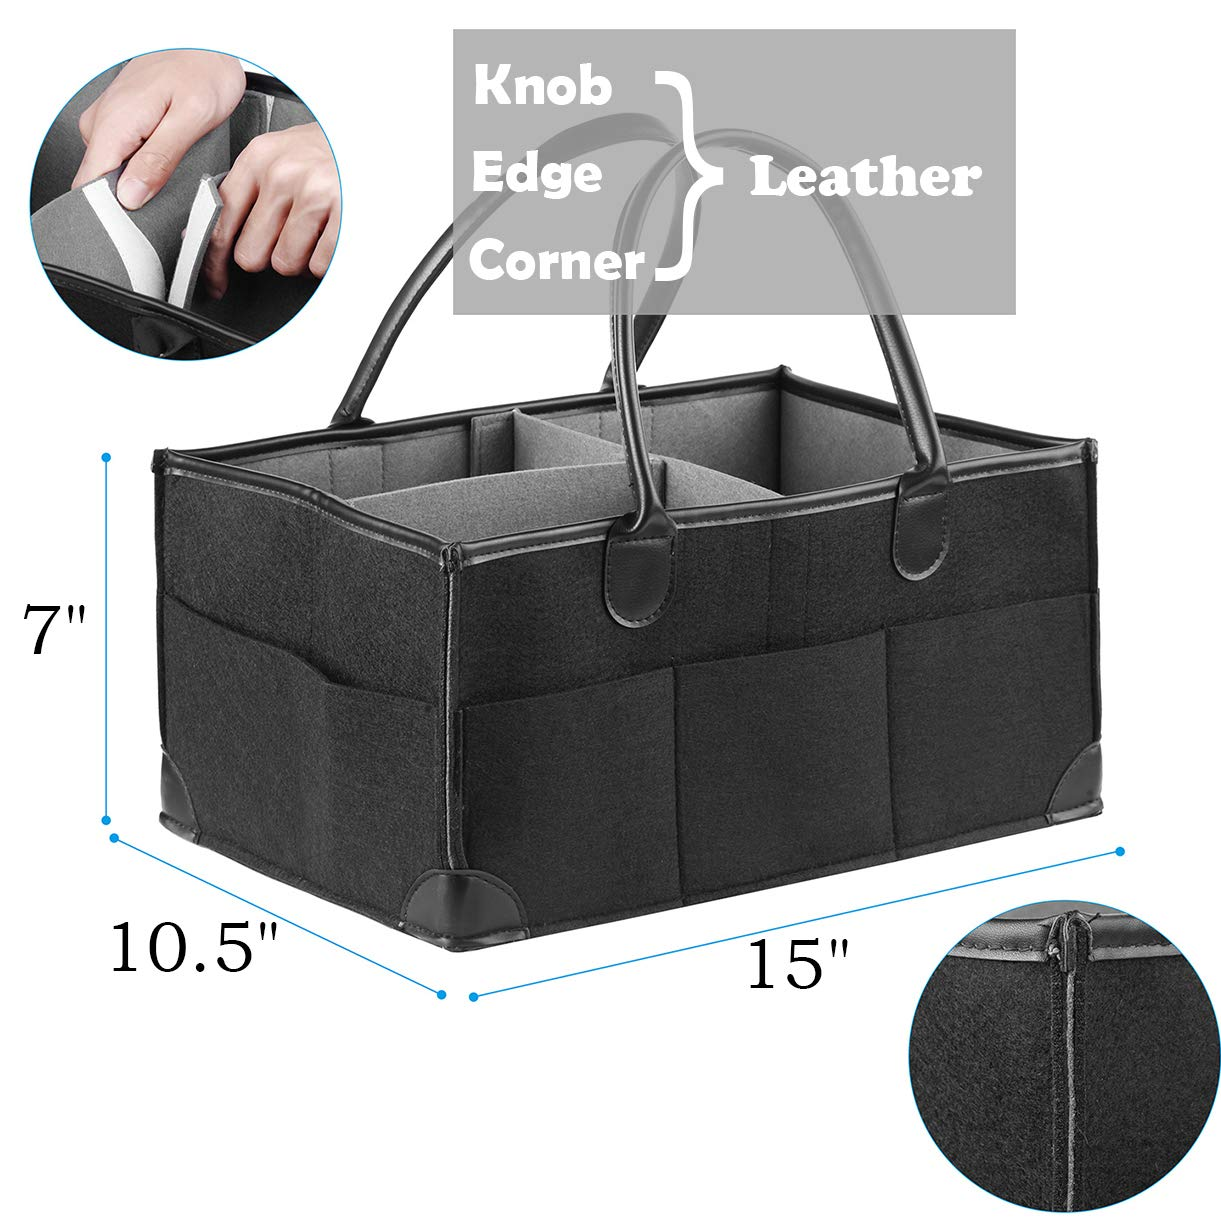 Baby Diaper Caddy Organizer,Portable Baby Products Storage Bag,High Volume Container,Suitable for Nursery,Car-Black